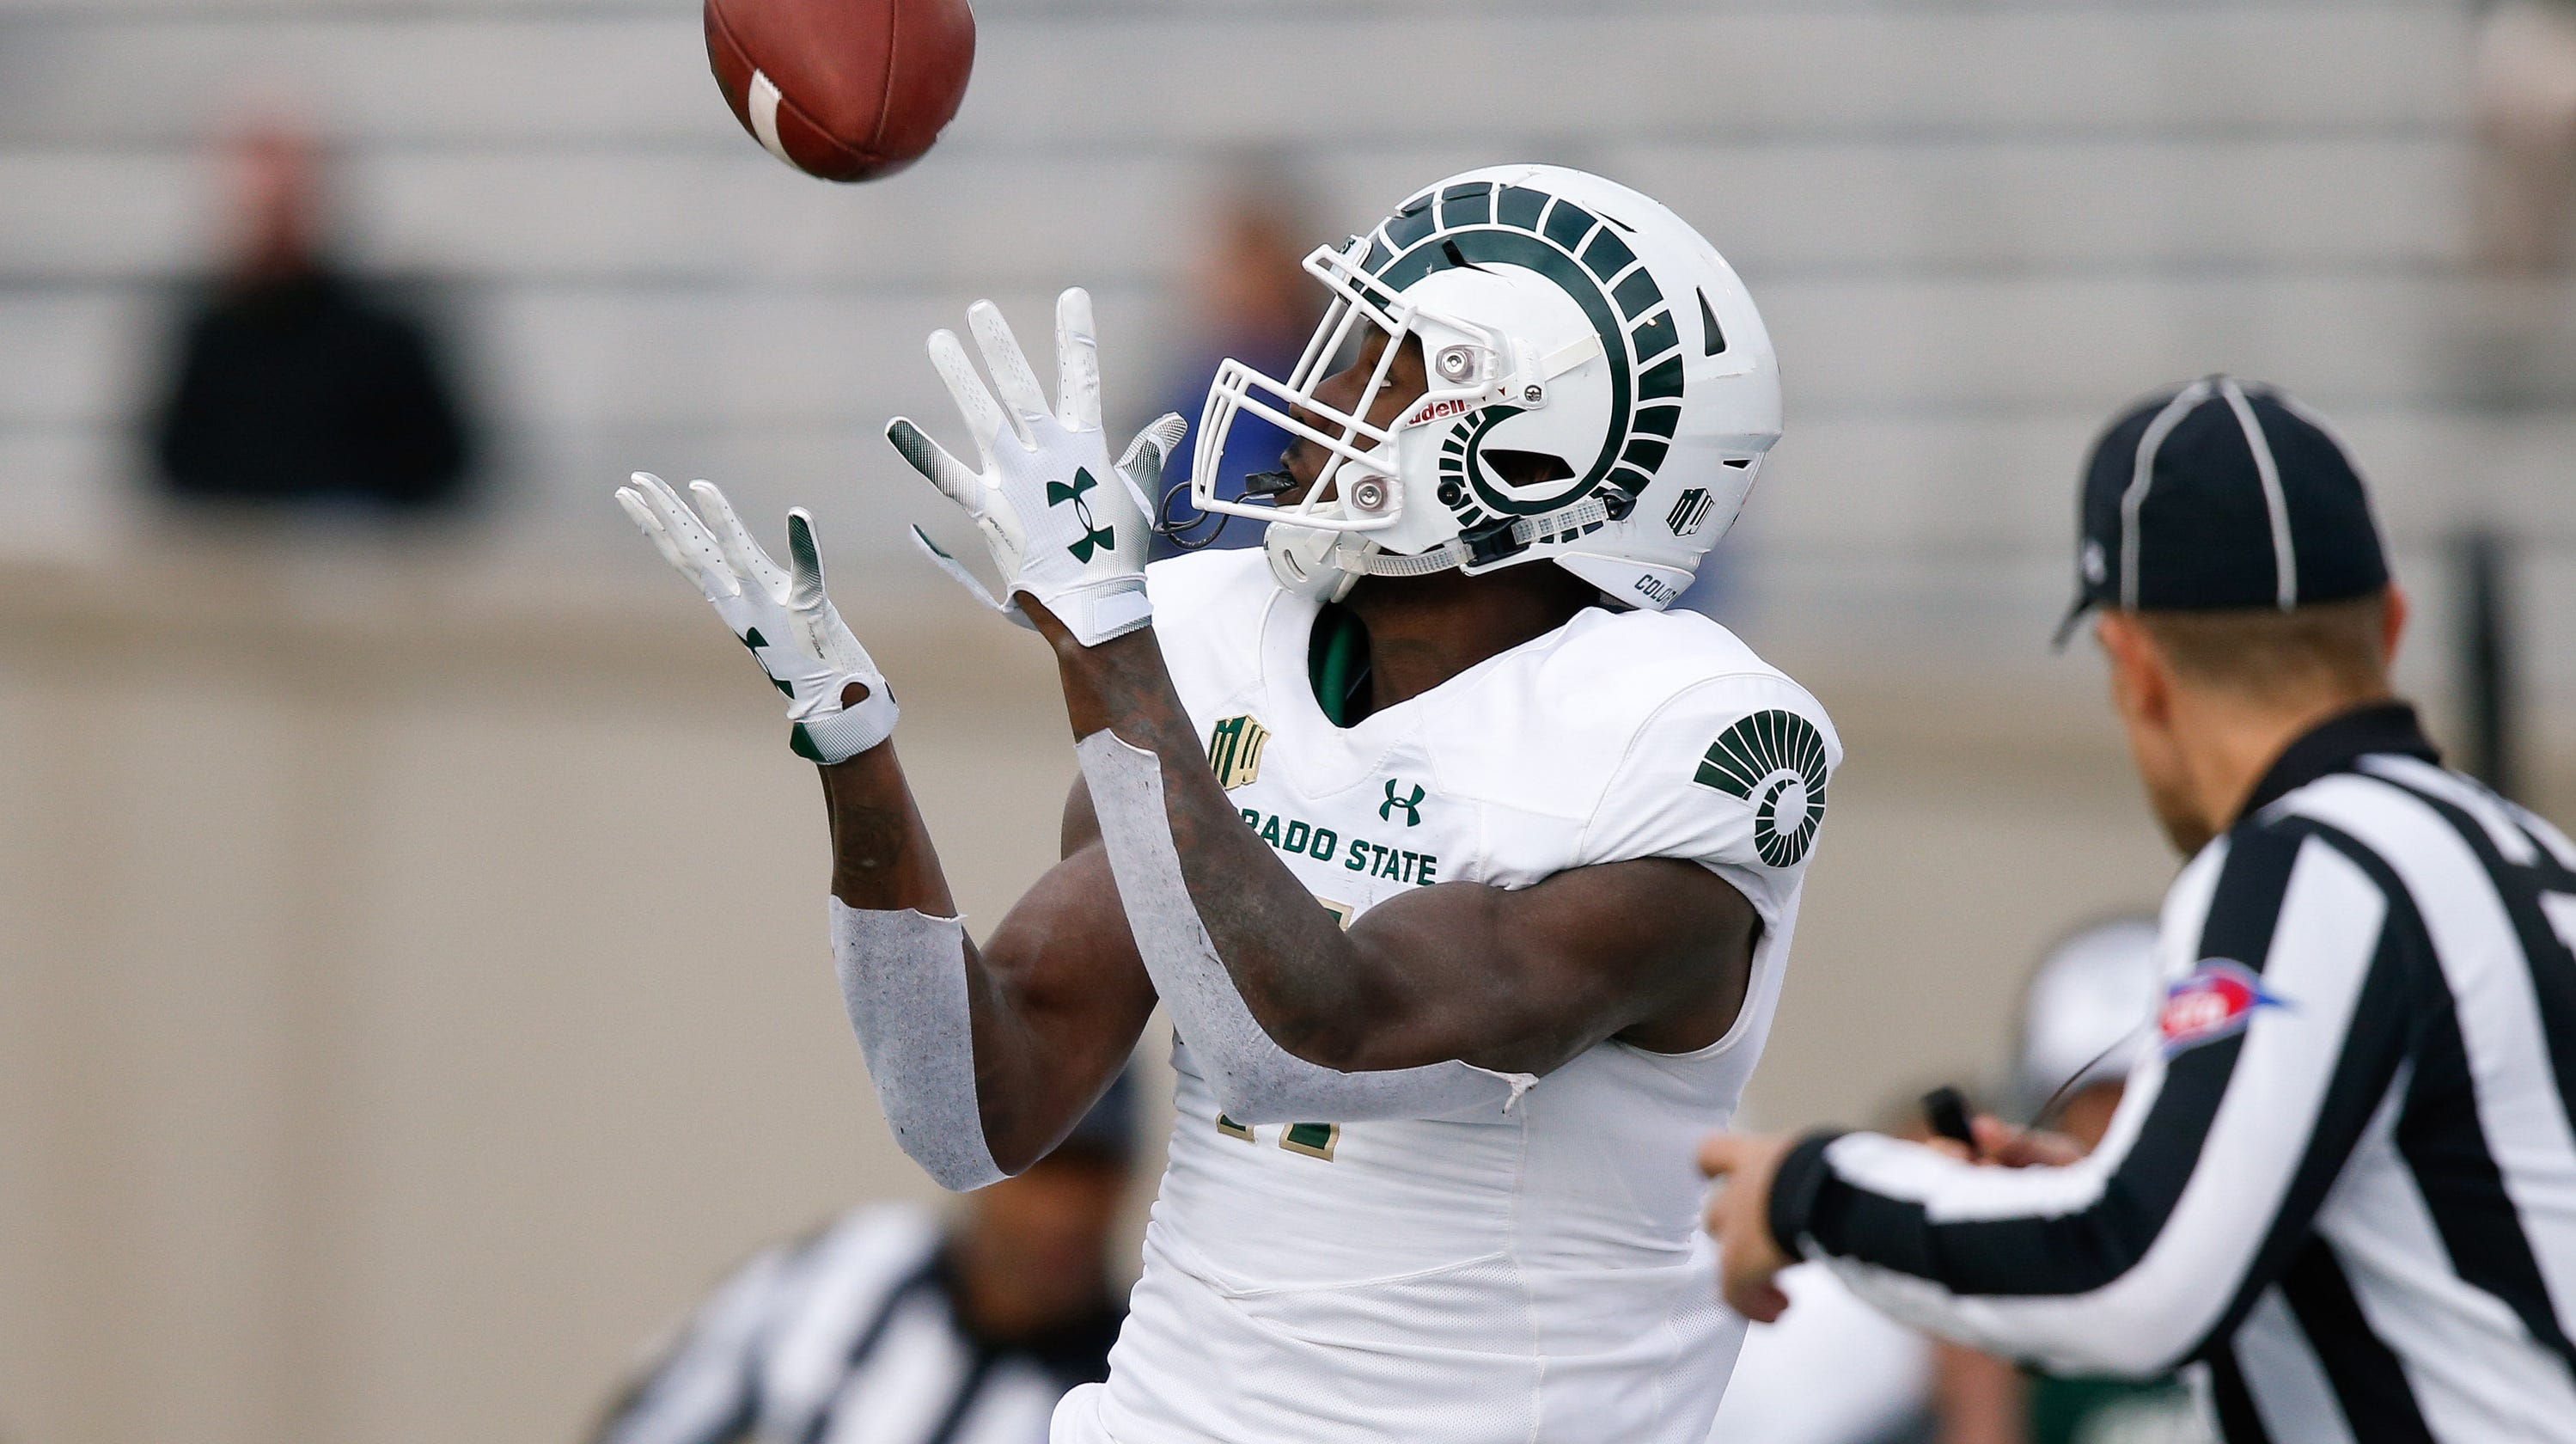 b9c01122ebe Air Force looked outstanding, but we cannot neglect to mention Colorado  State in all-white with ...